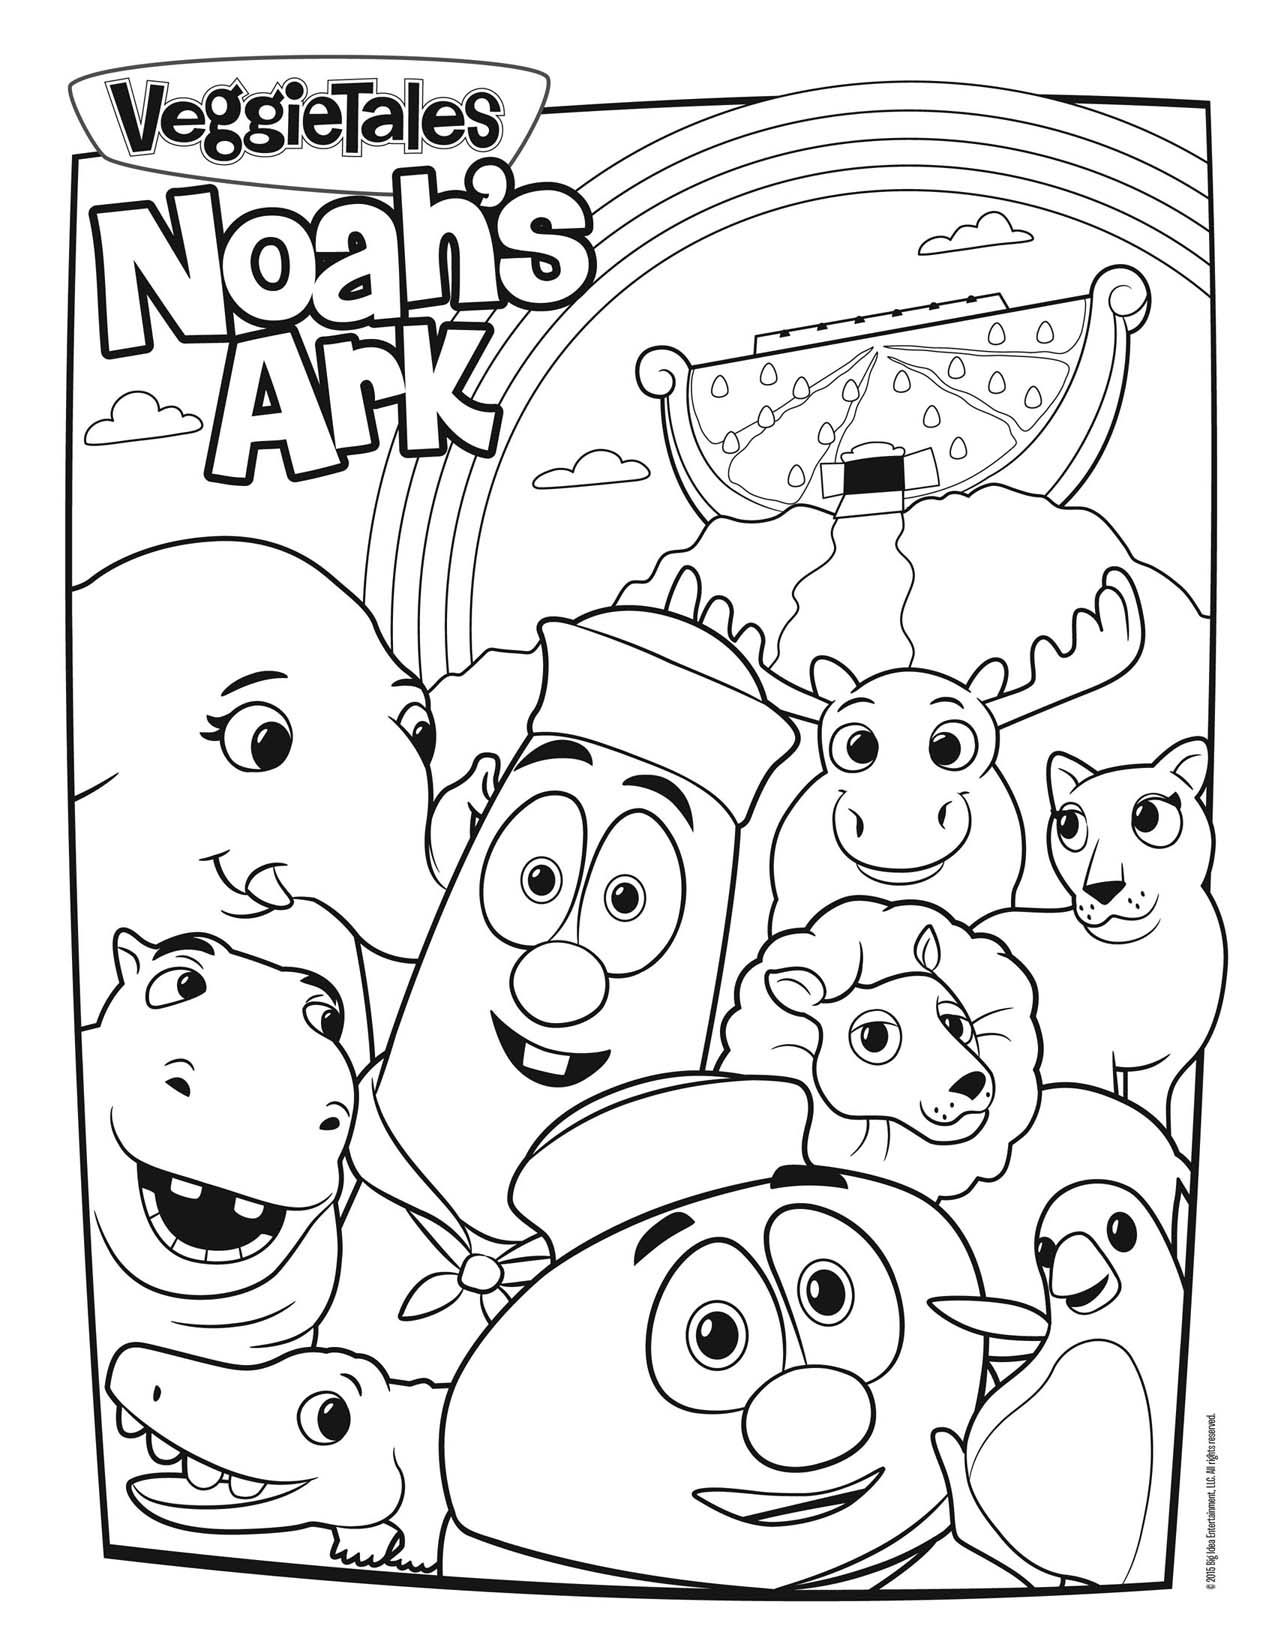 VeggieTales Noah's Ark Coloring Page Just for Kids (and